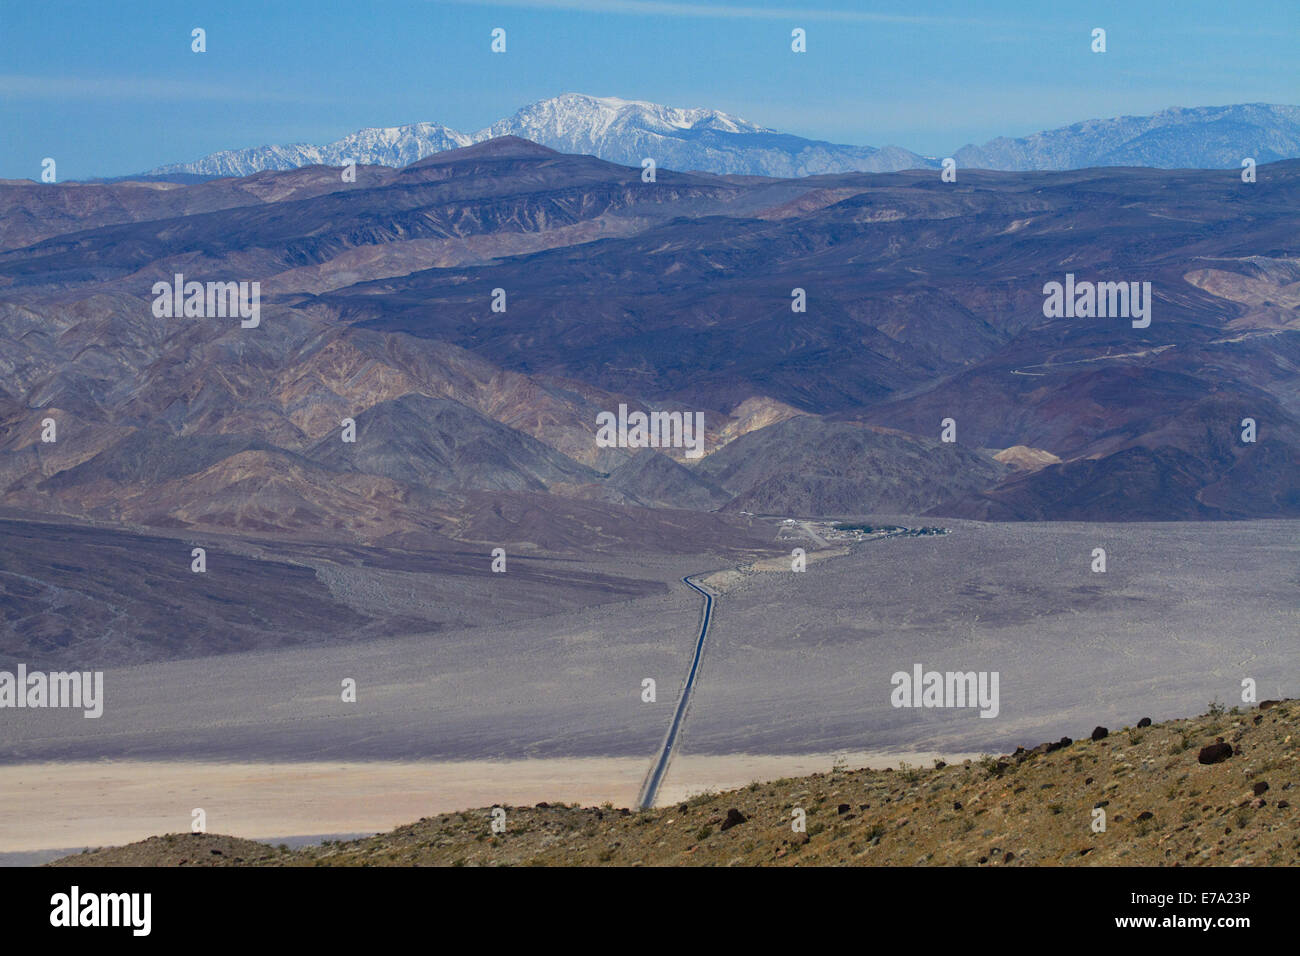 State Route 190 through Panamint Valley towards Panamint Springs, Death Valley National Park, Mojave Desert, with - Stock Image